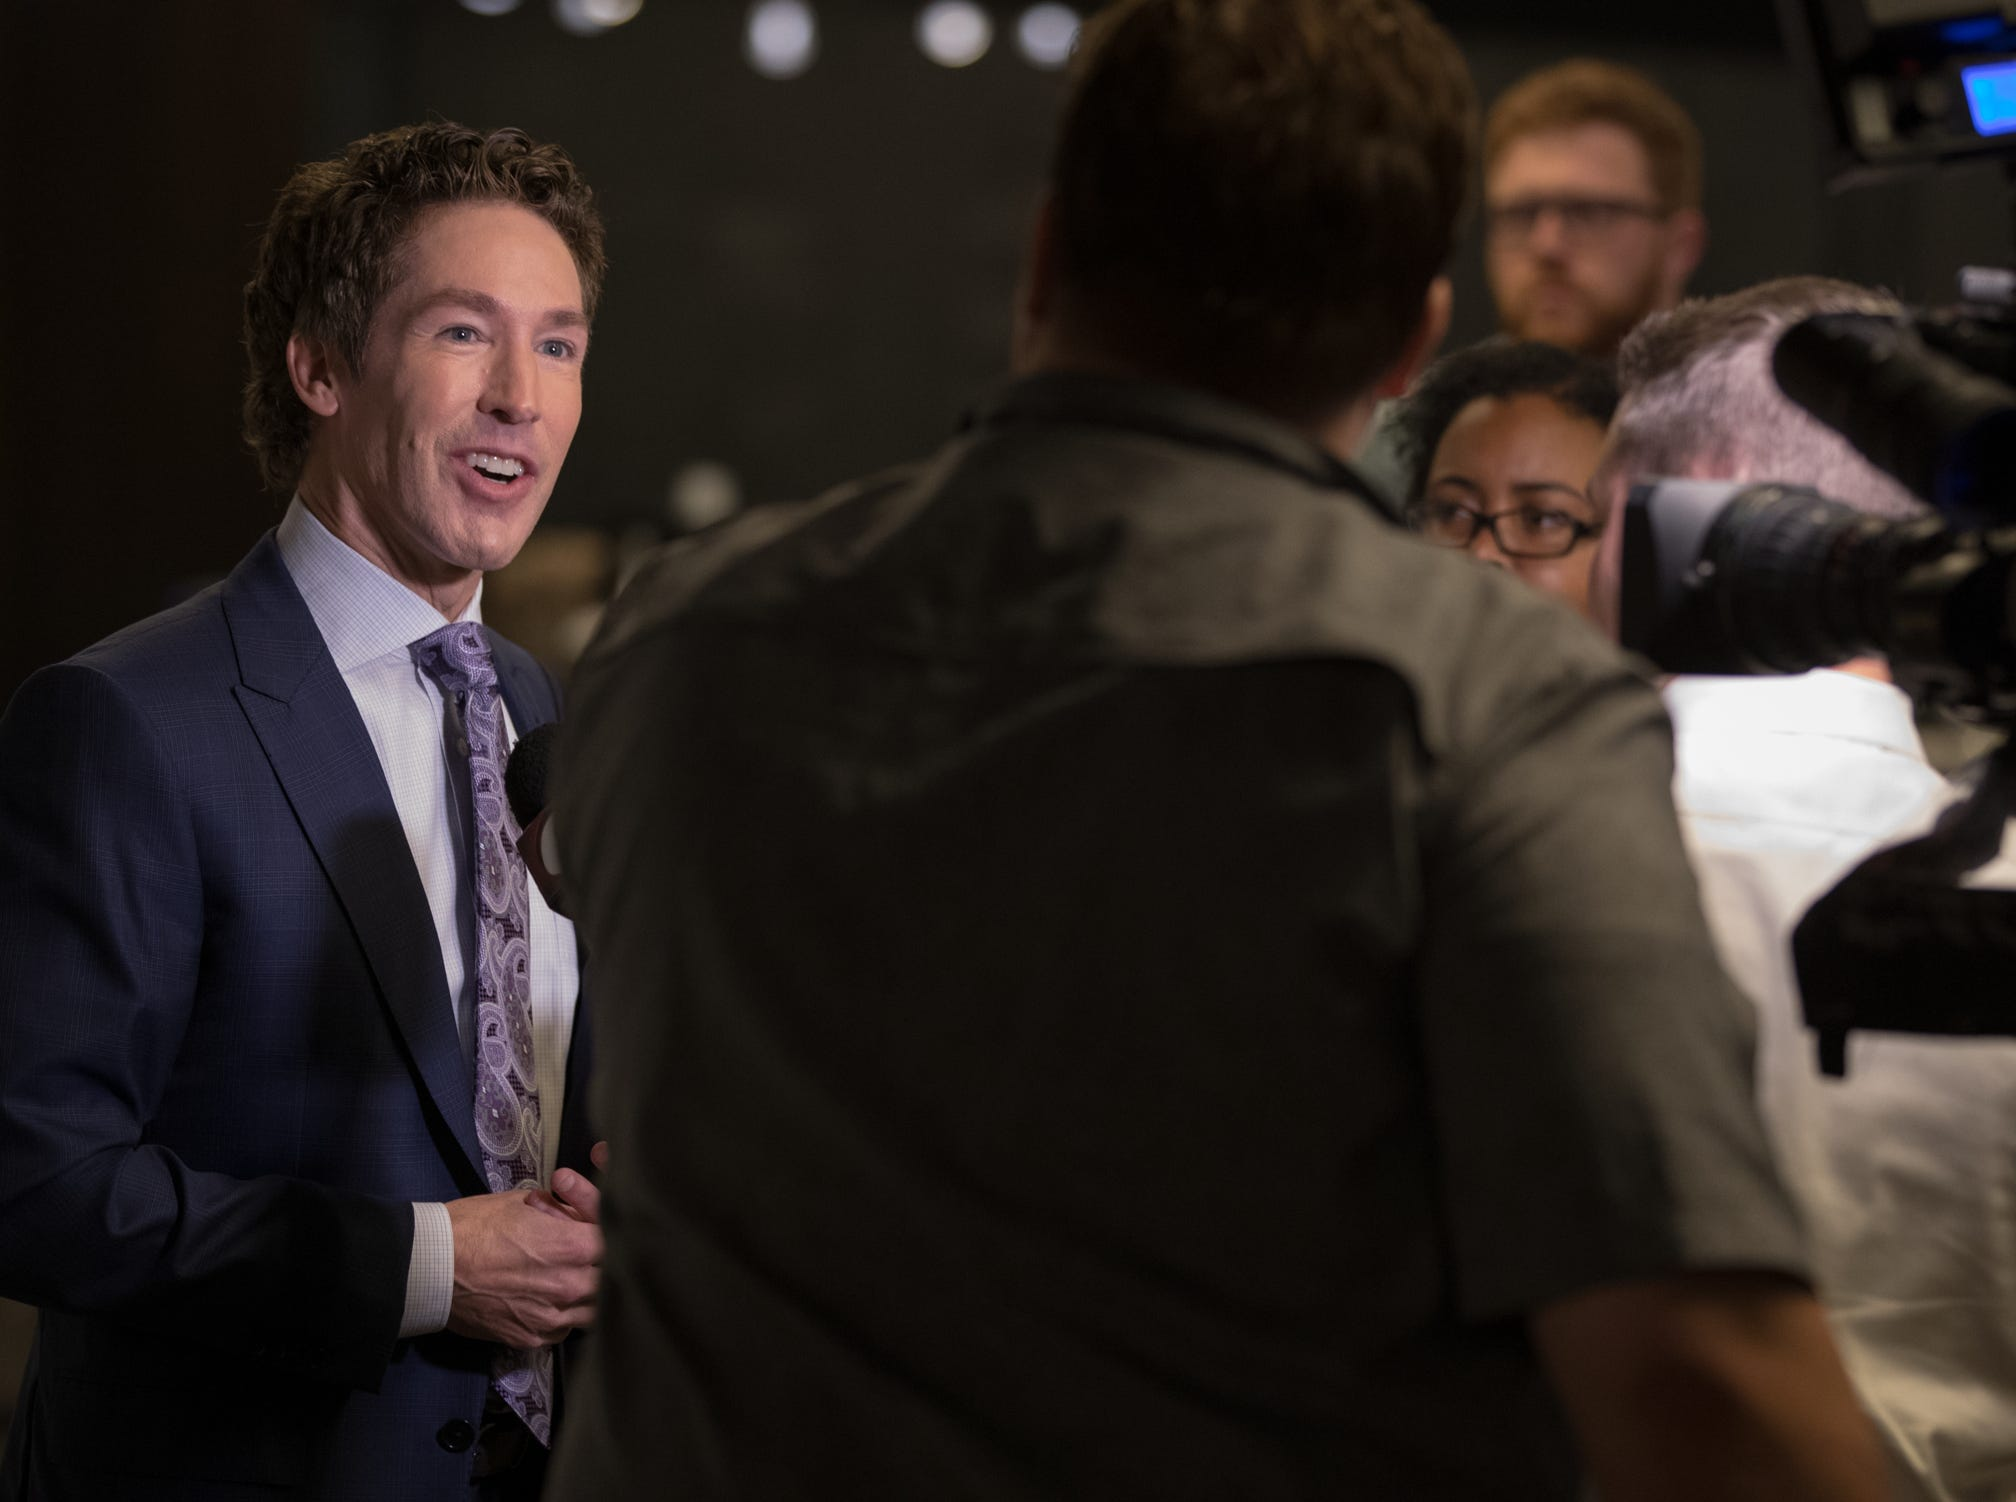 Joel Osteen talks with media members at Bankers Life Fieldhouse, Indianapolis, Friday, Aug. 10, 2018. The event, dubbed Night of Hope with Joel and Victoria, drew about 8,000 people to the arena for the event with the Houston-based televangelist.